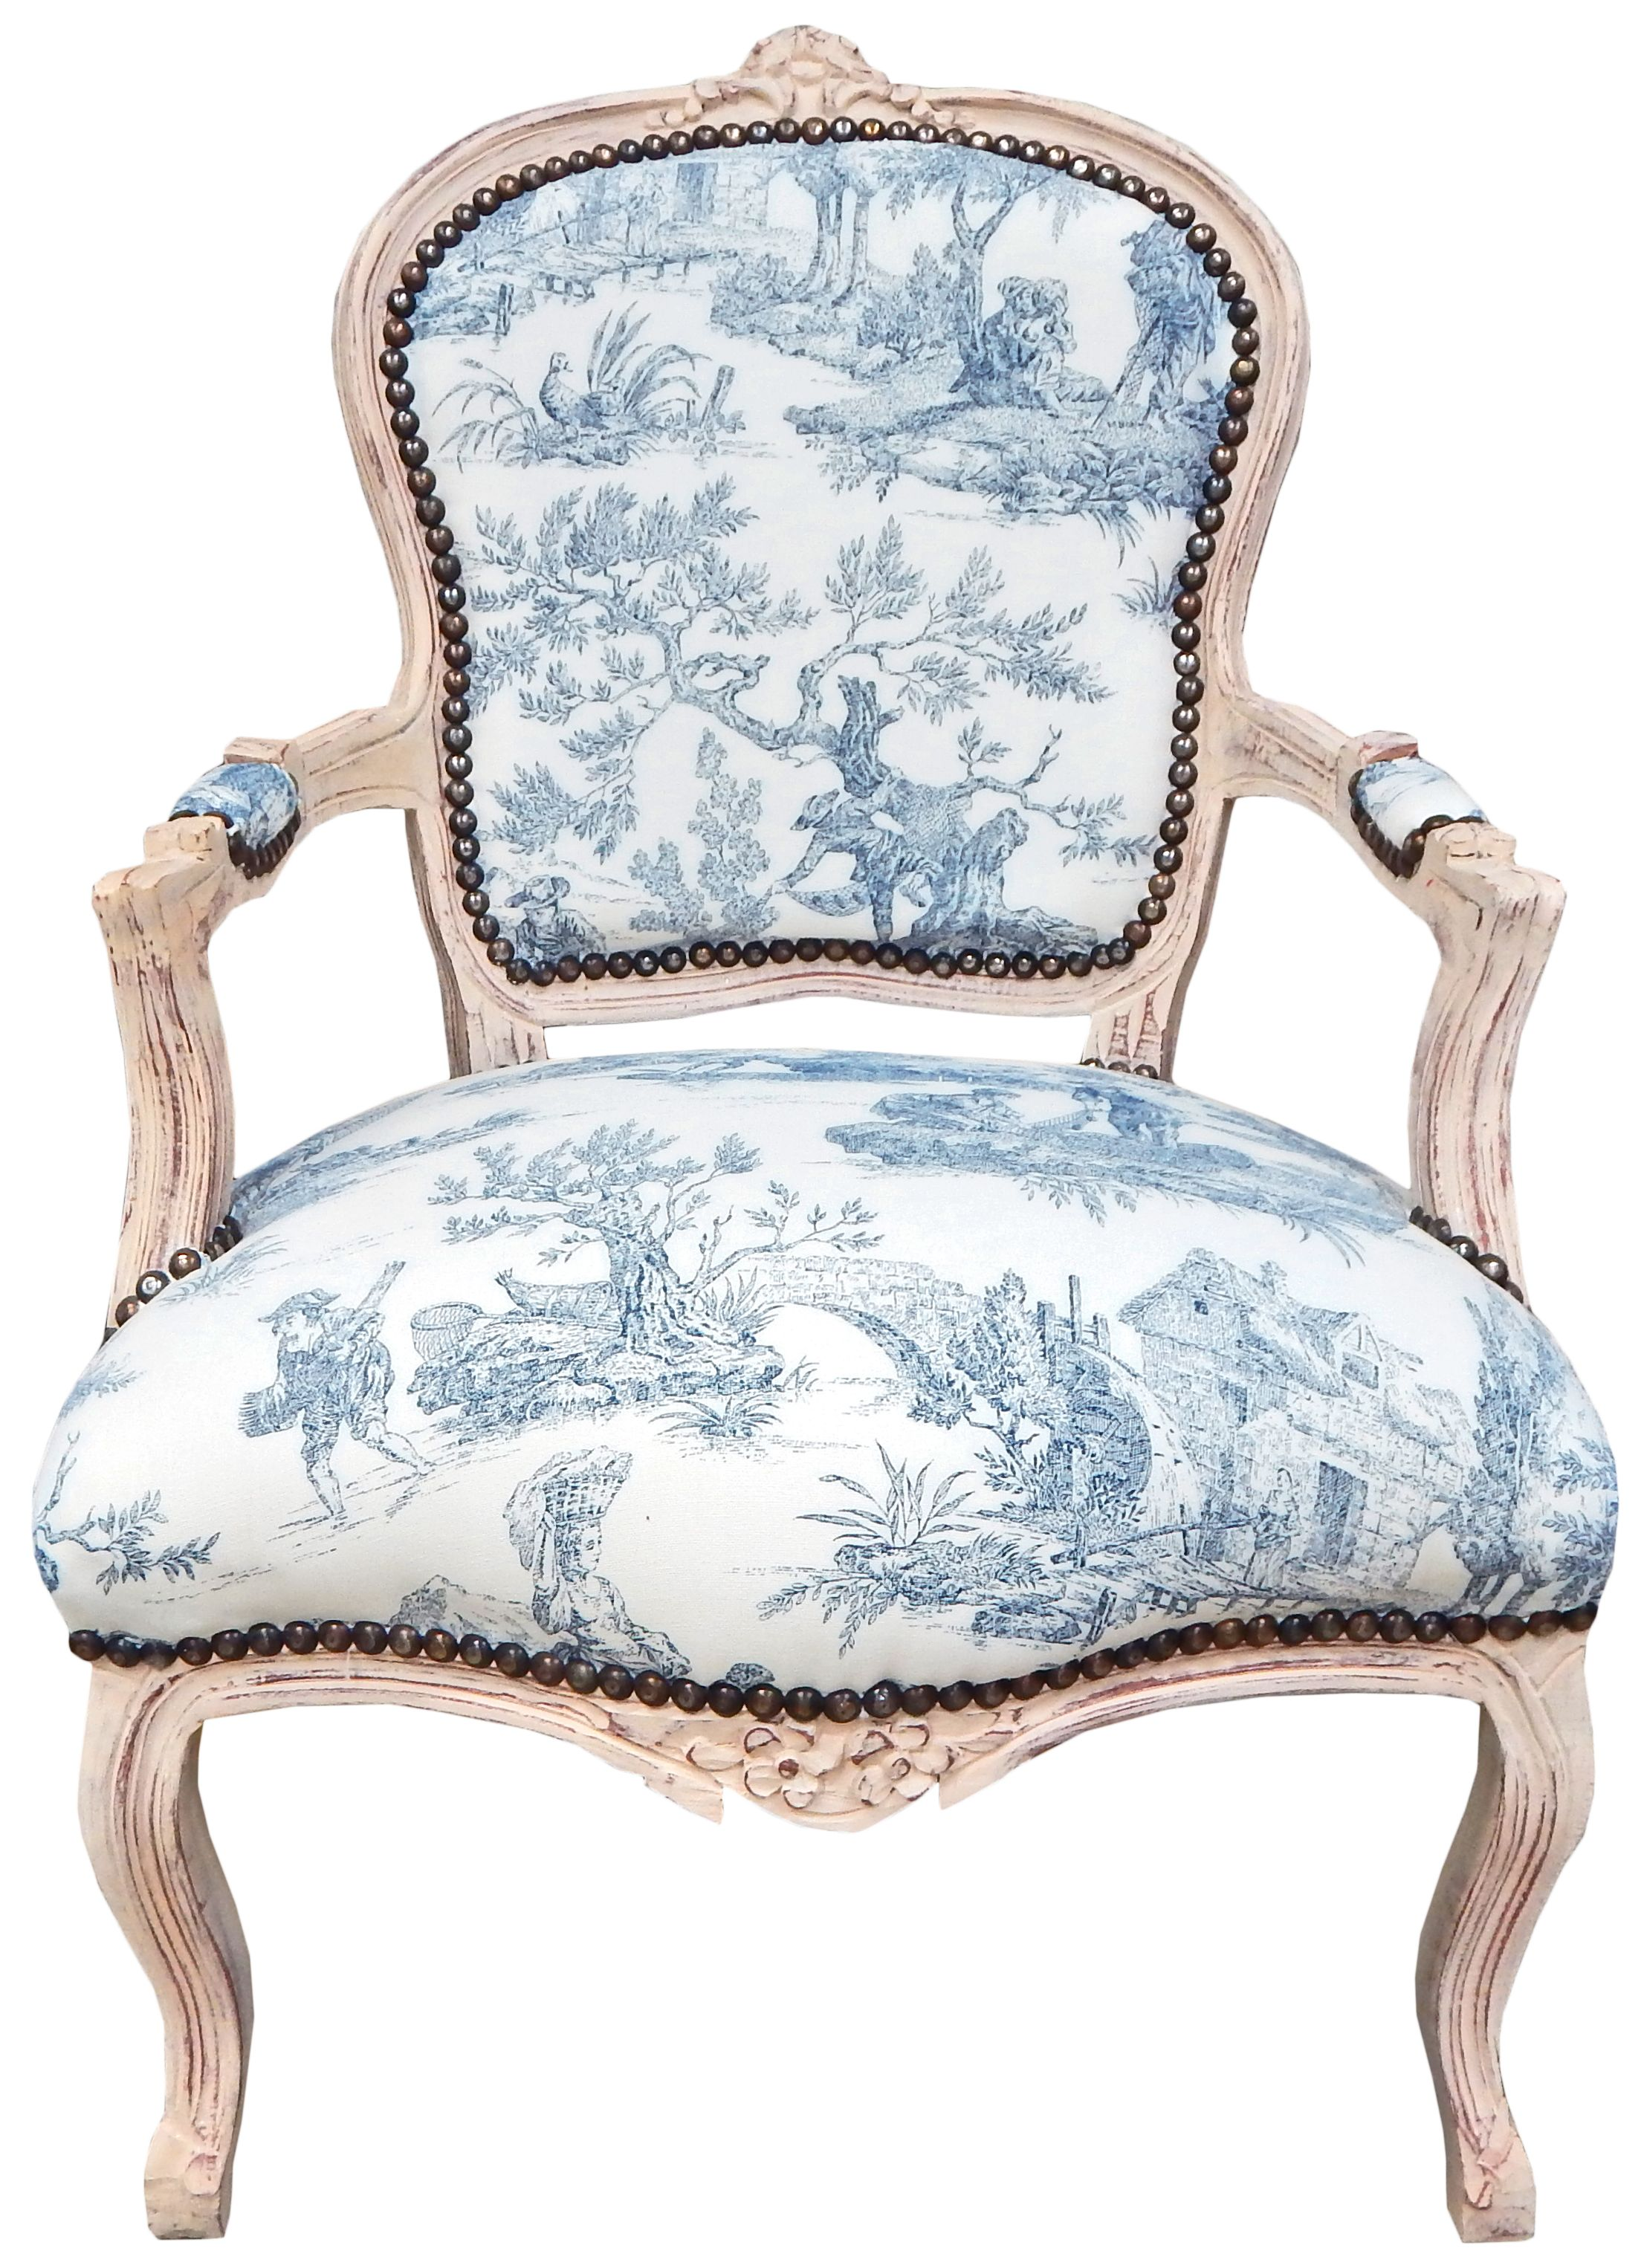 Fantastic Baroque Armchair Of Louis Xv Style Blue Toile De Jouy And Caraccident5 Cool Chair Designs And Ideas Caraccident5Info